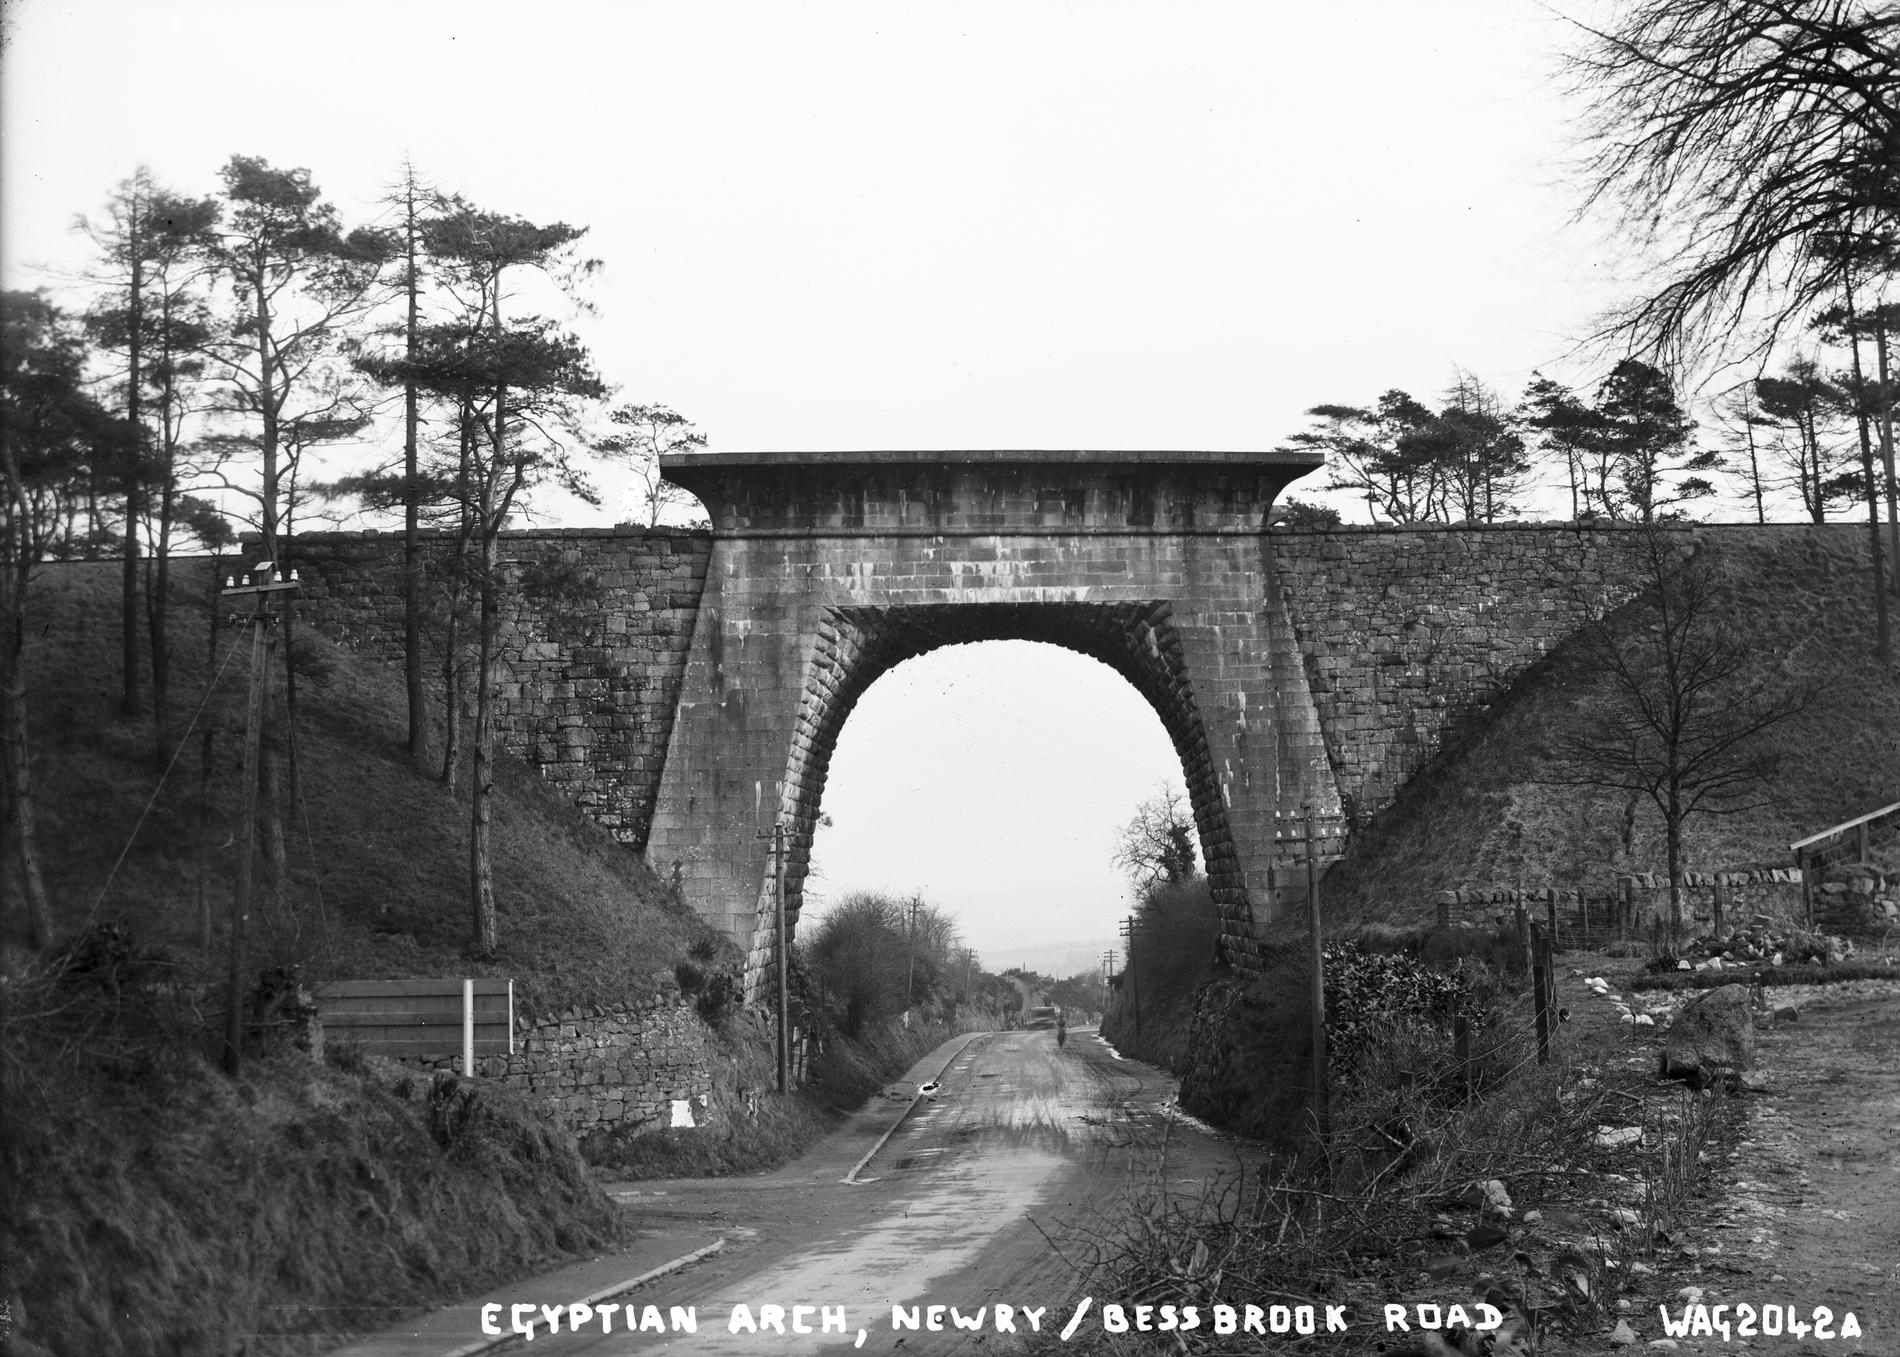 EGYPTIAN ARCH, NEWRY/BESSBROOK ROAD (Photograph; glass plate negative)